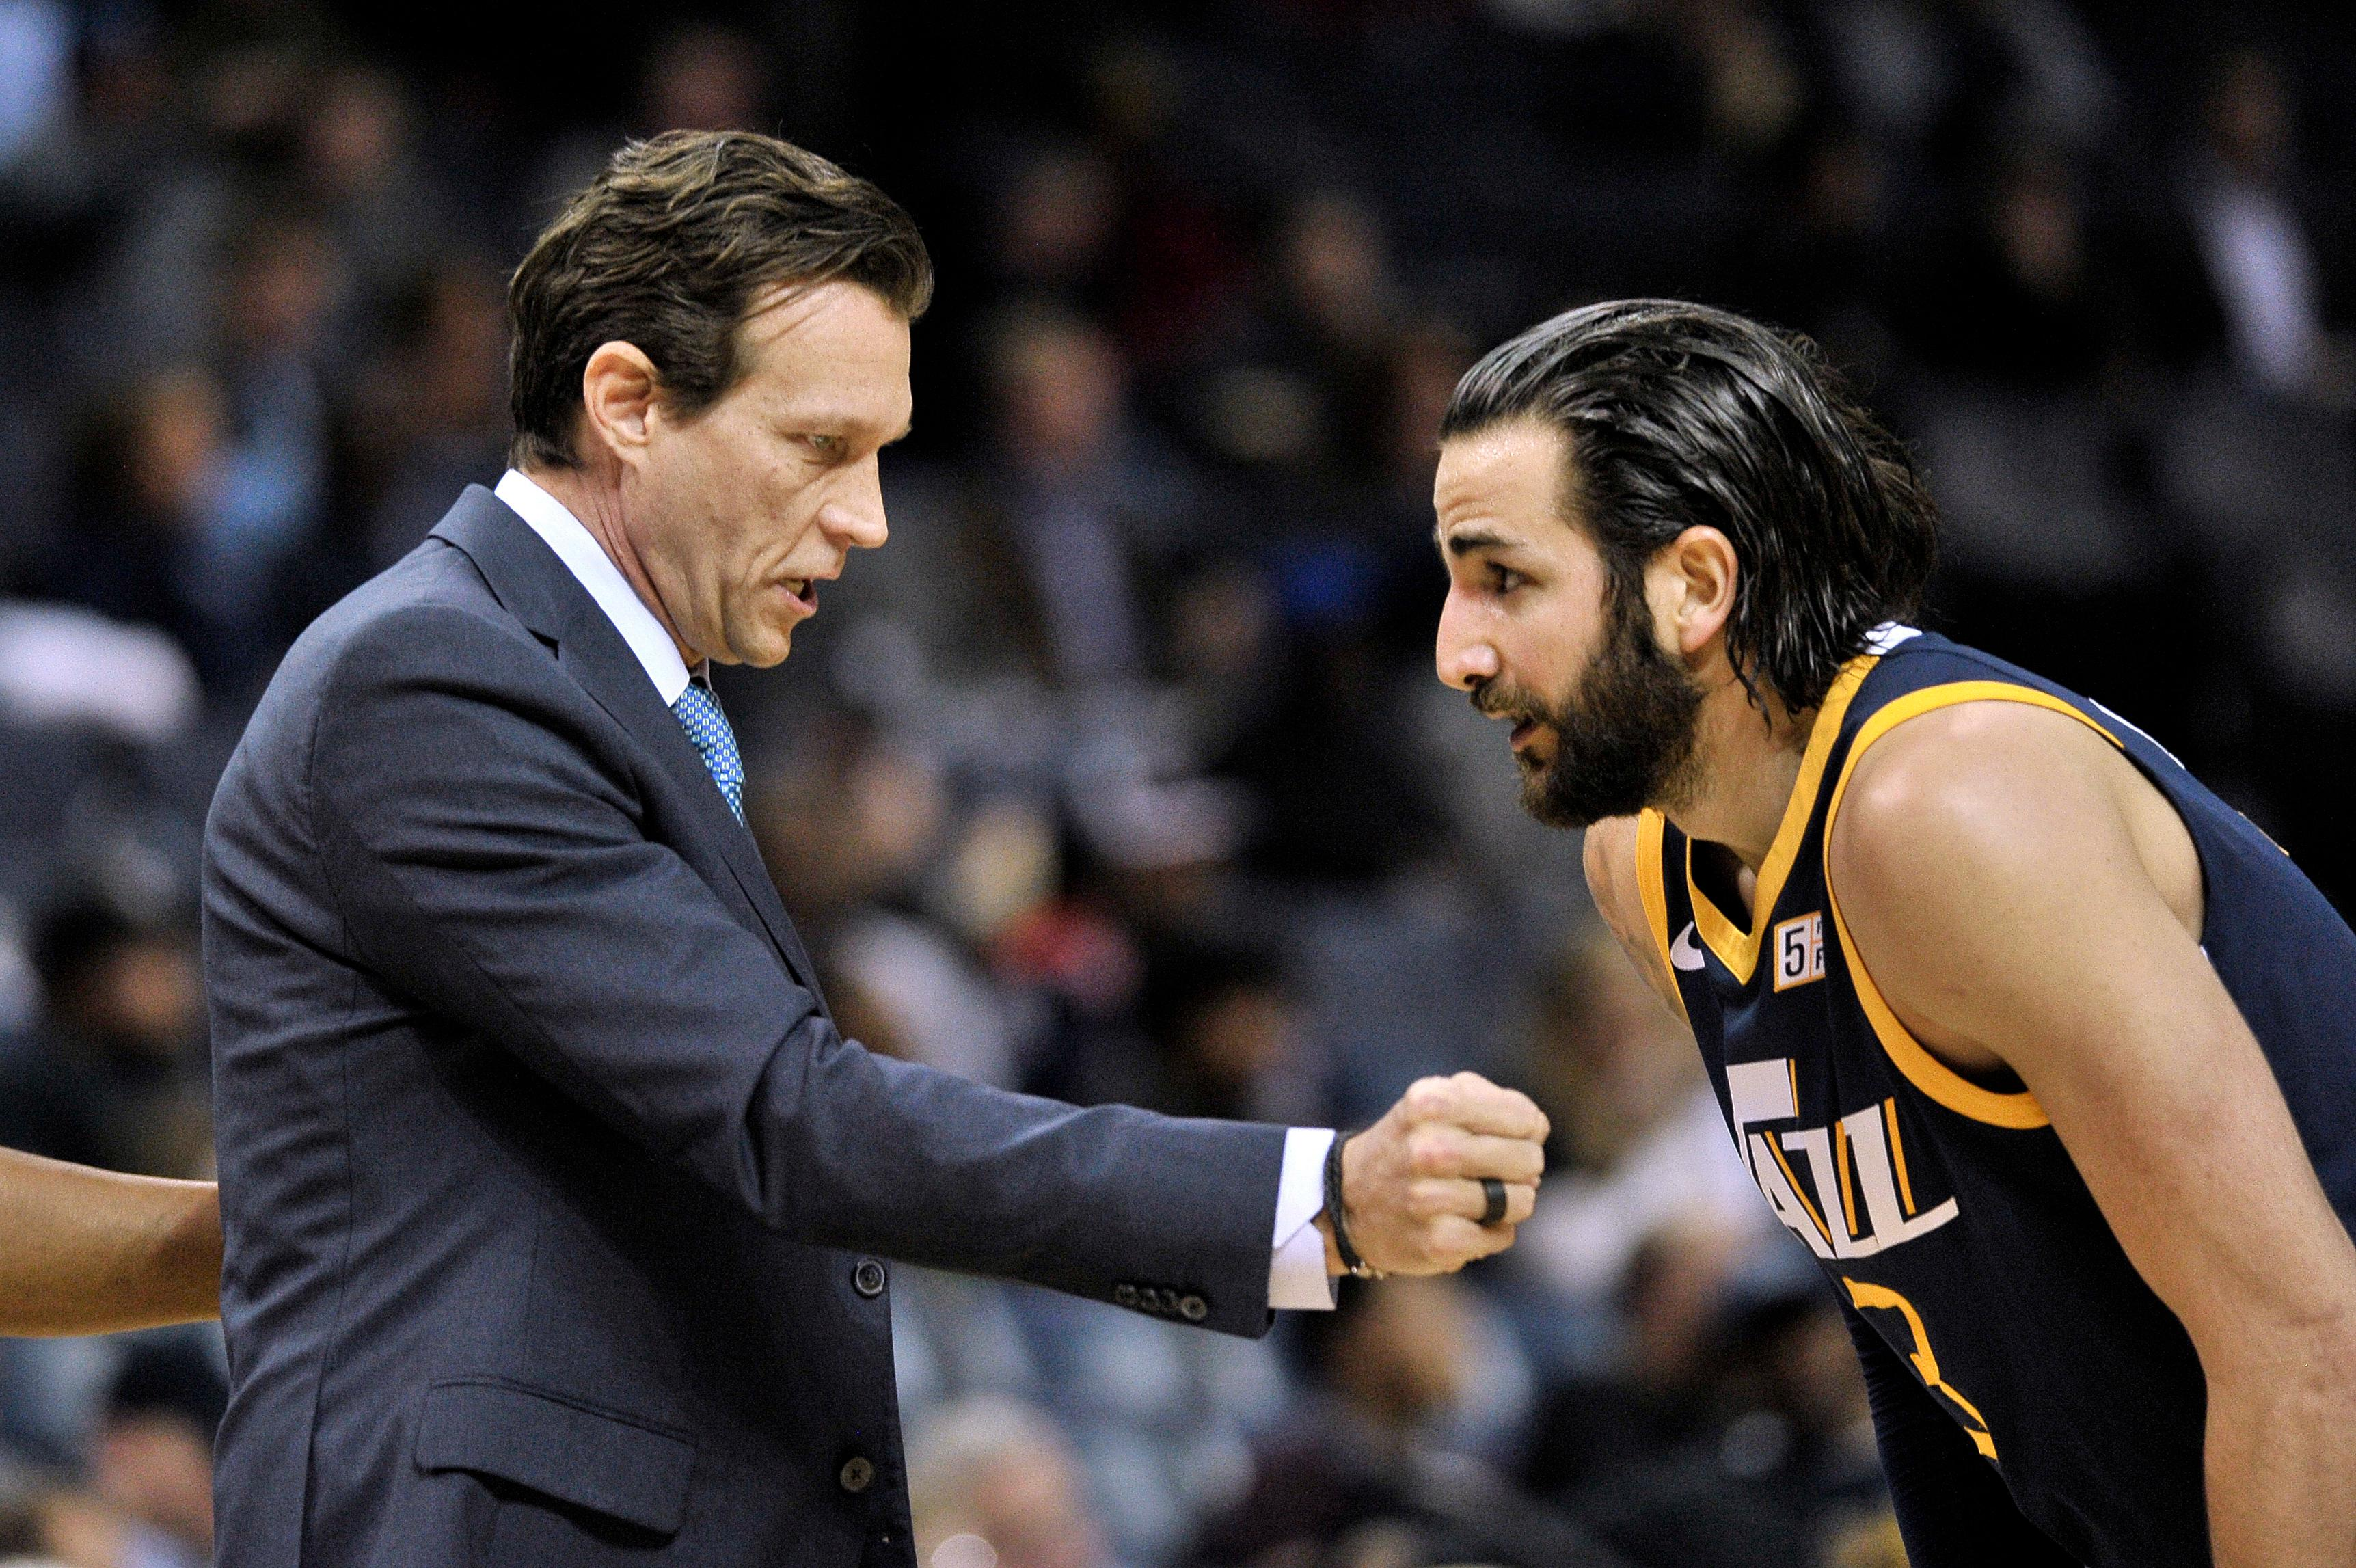 Utah Jazz coach Quin Snyder, left, talks with guard Ricky Rubio during the first half of the team's NBA basketball game against the Memphis Grizzlies on Wednesday, Feb. 7, 2018, in Memphis, Tenn. (AP Photo/Brandon Dill)